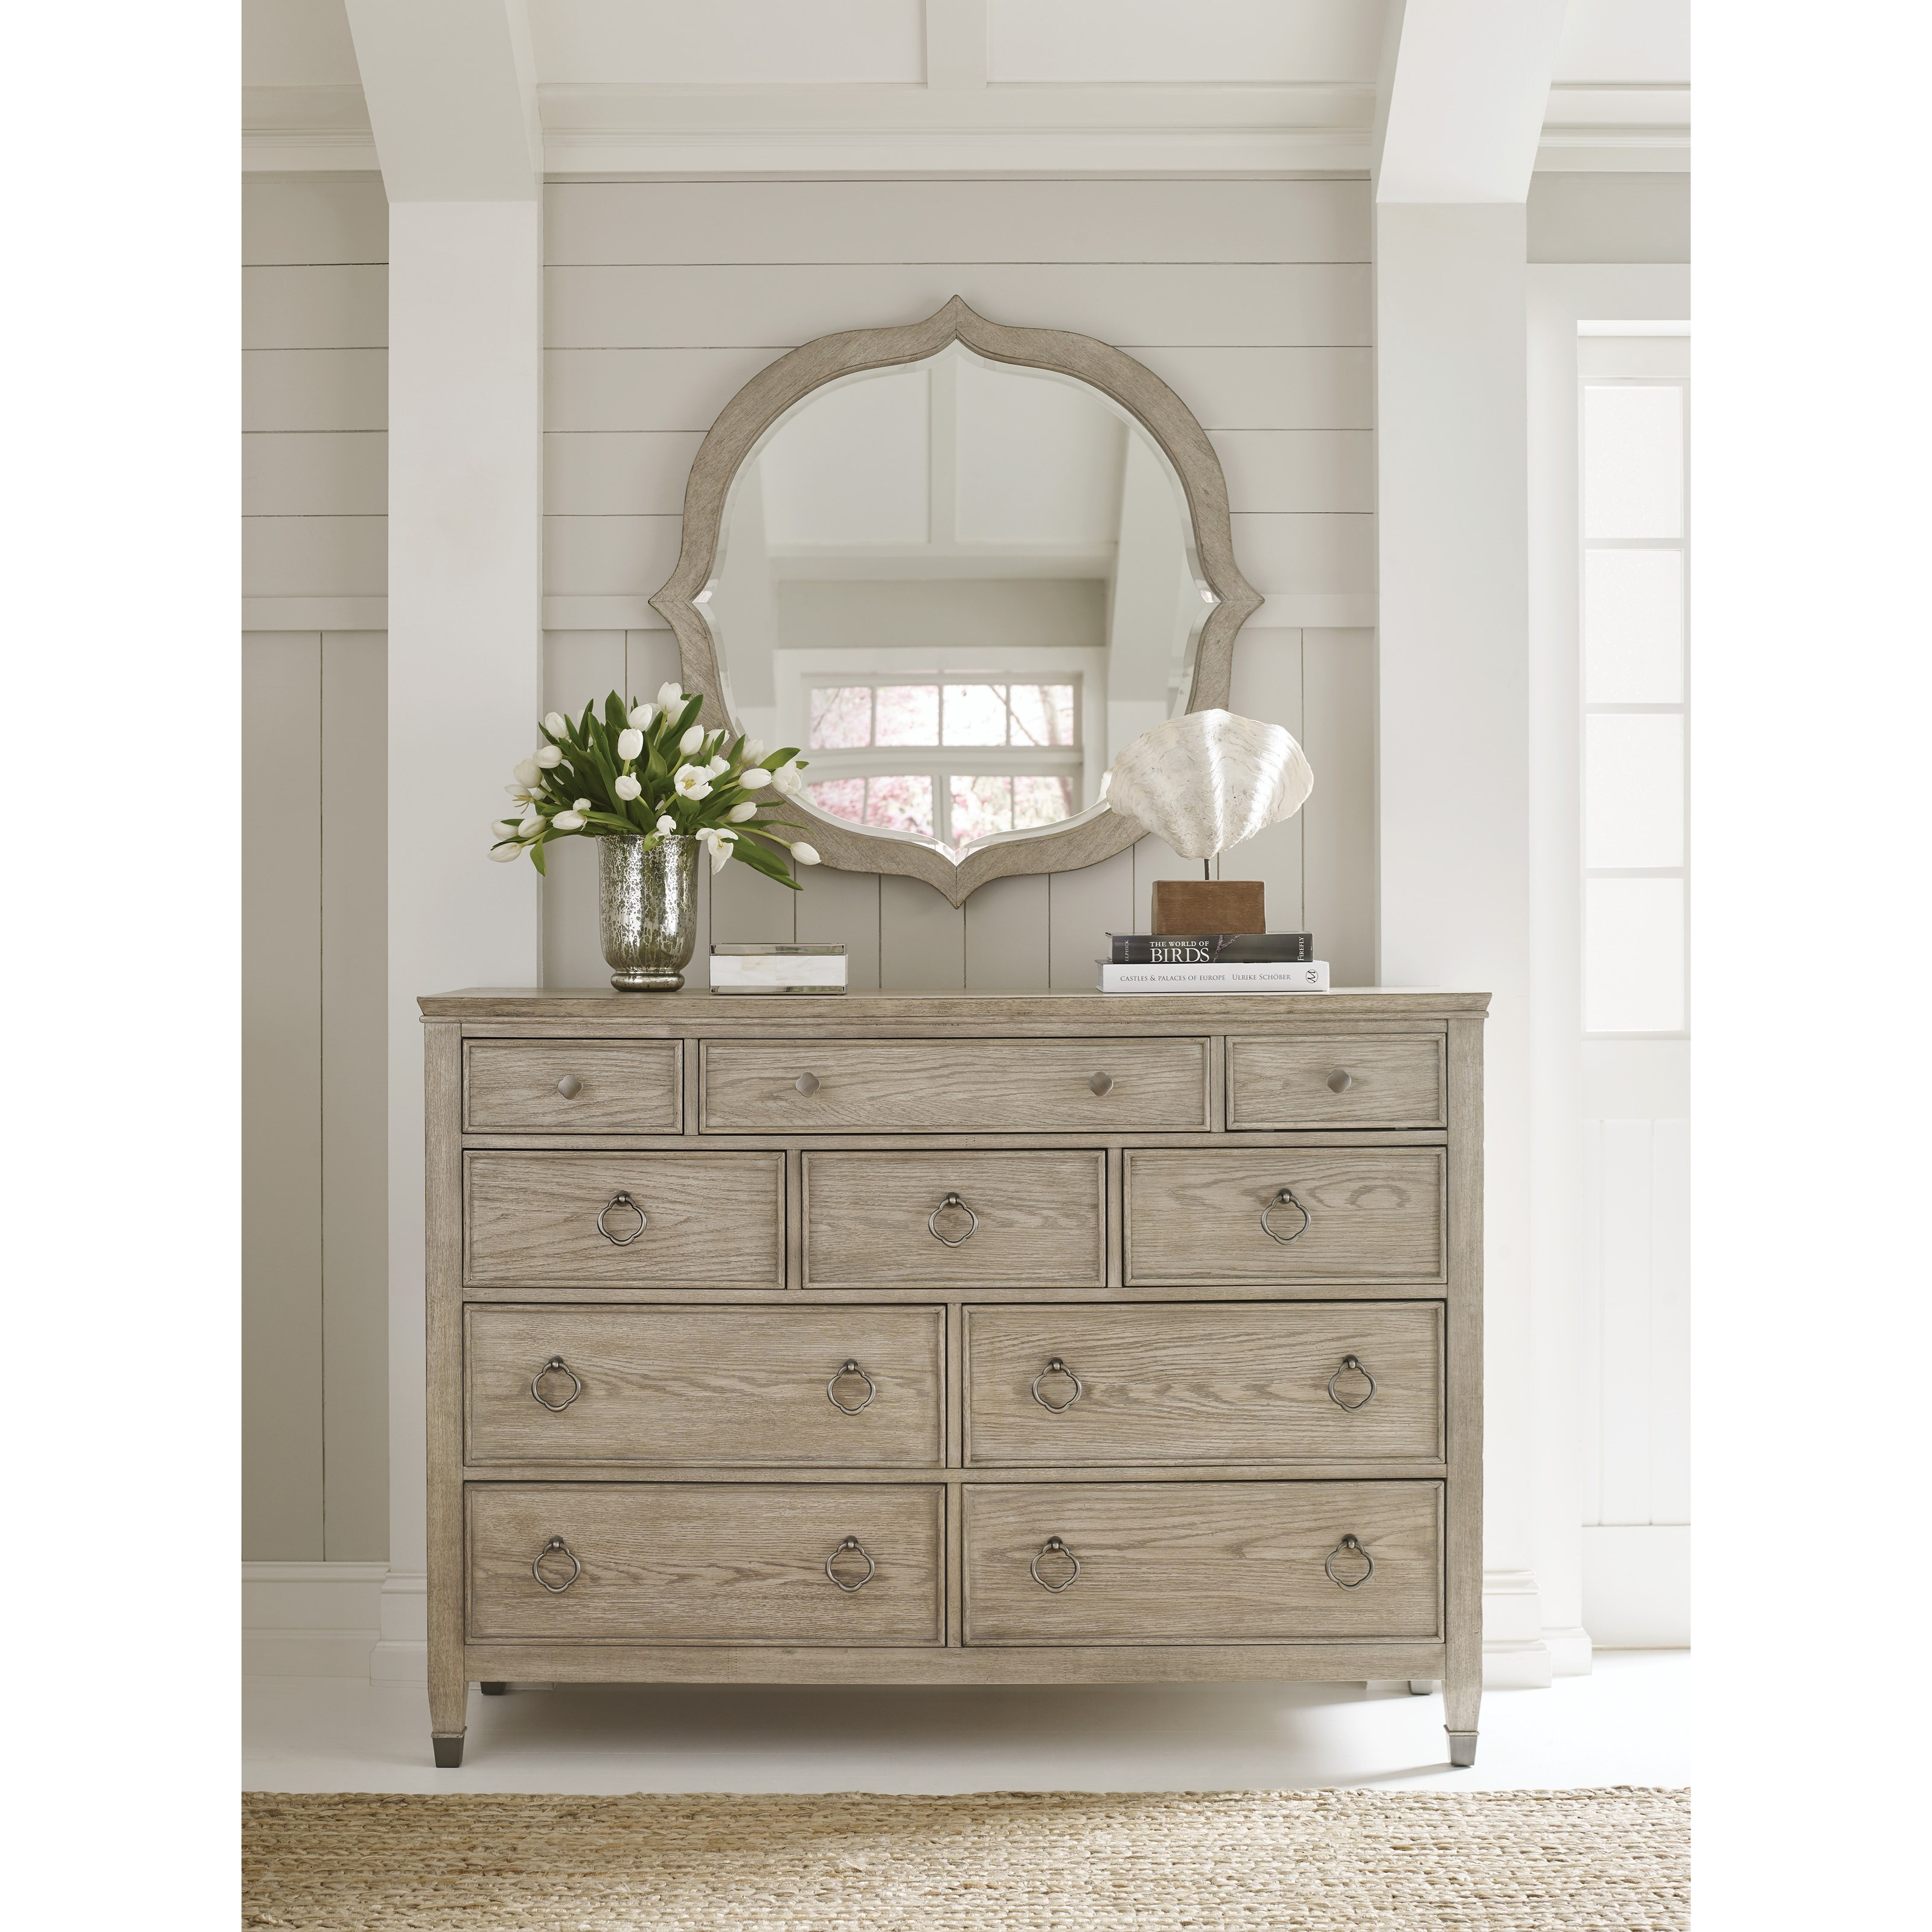 Living Trends Vista Relaxed Vintage Ten Drawer Jupiter